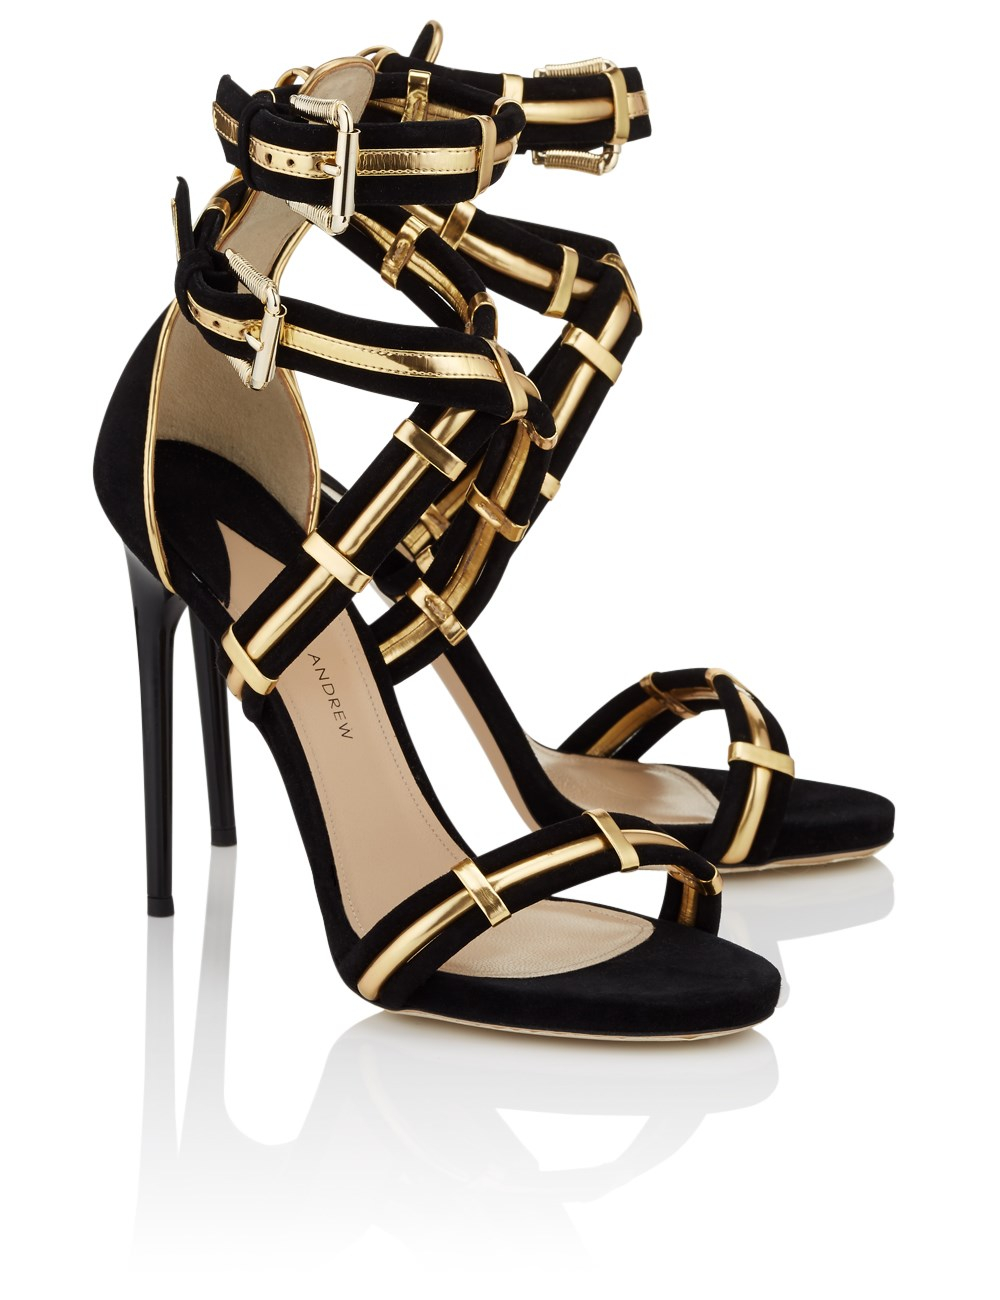 Black and Gold Heels Affordable Black & Gold Heels in Kitten, Mid, Low, High Heel, Platform, Peep Toe & More Styles Rock out with cheap black and gold heels to un-cage your inner rocker chick, and look for many other discount women's shoes at ShoeDazzle for footwear that will release all of your fashion personalities.